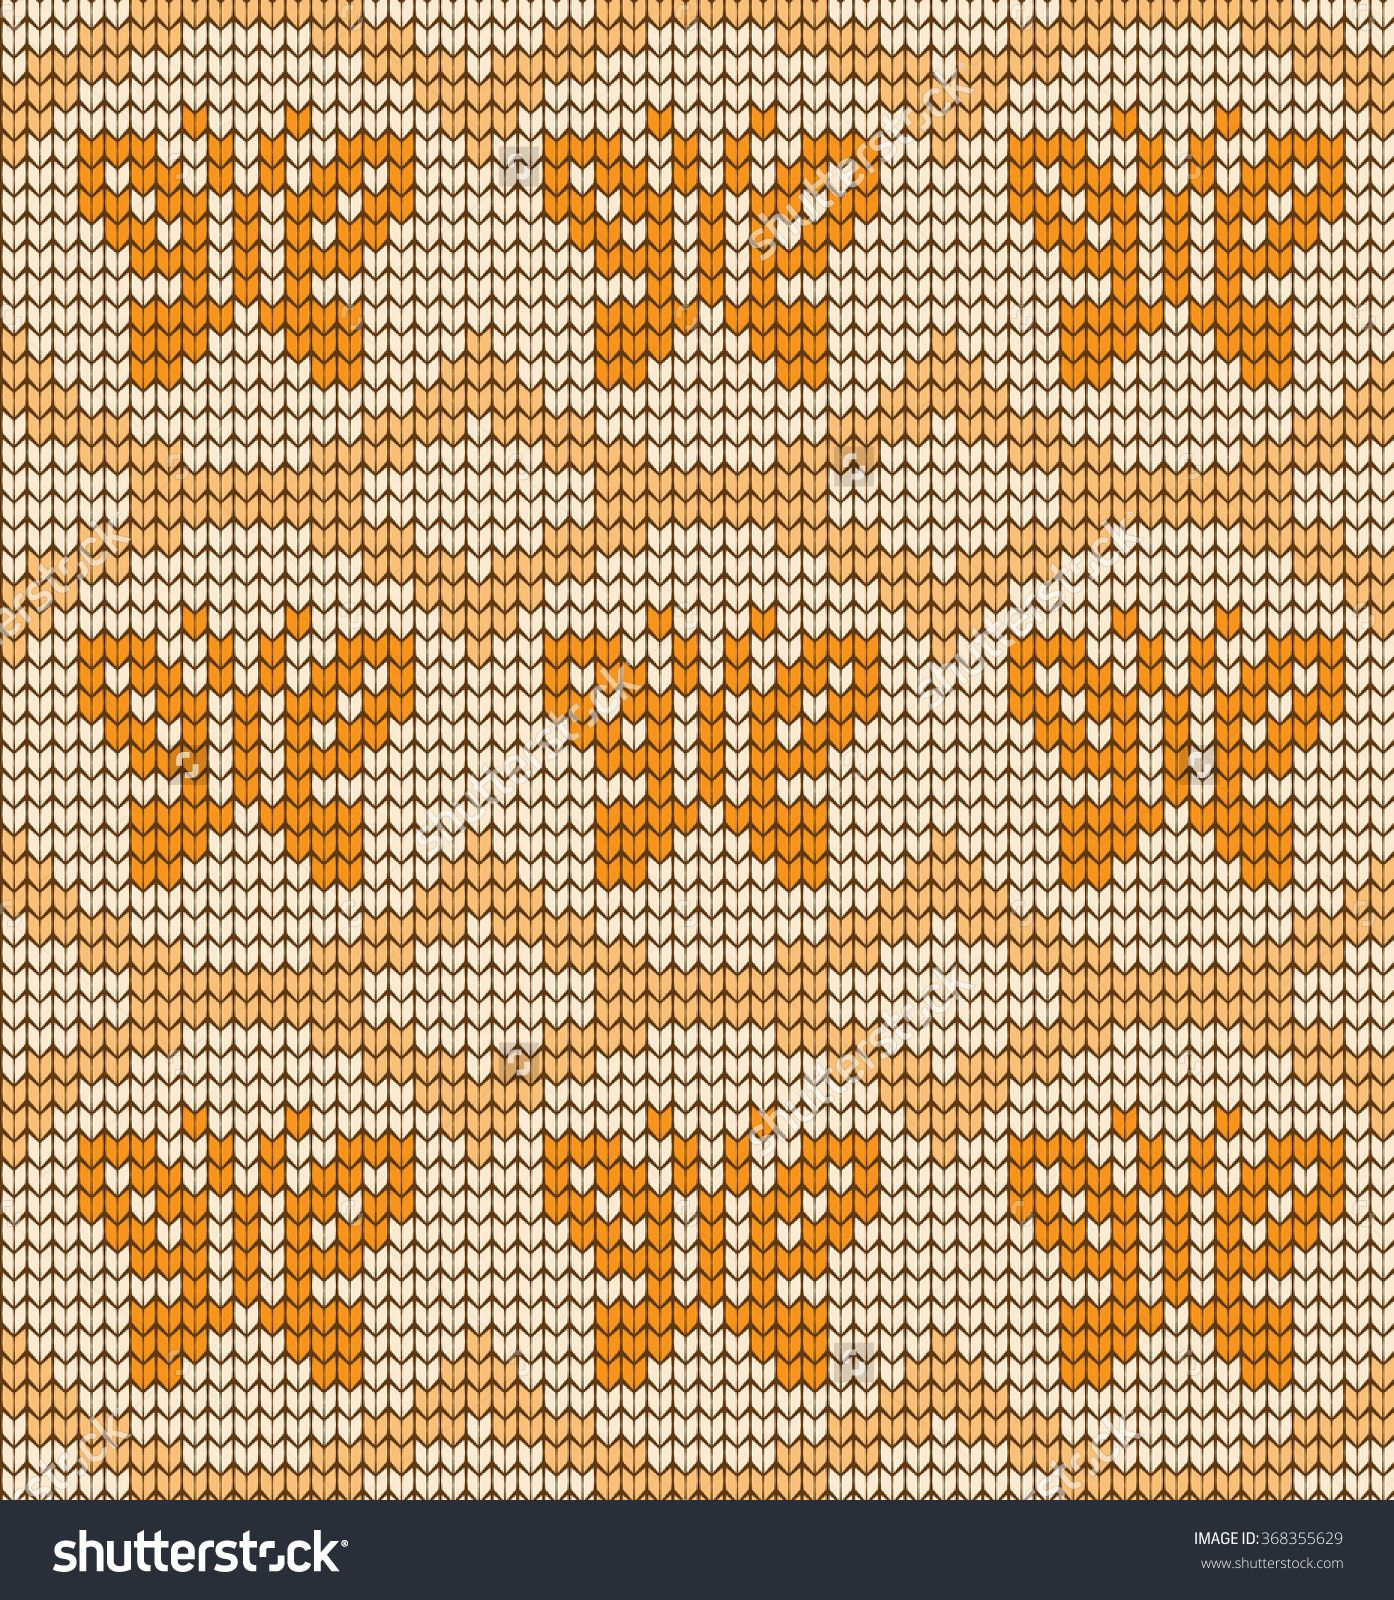 Vector Knitted Pattern With Butterflies - 368355629 : Shutterstock ...